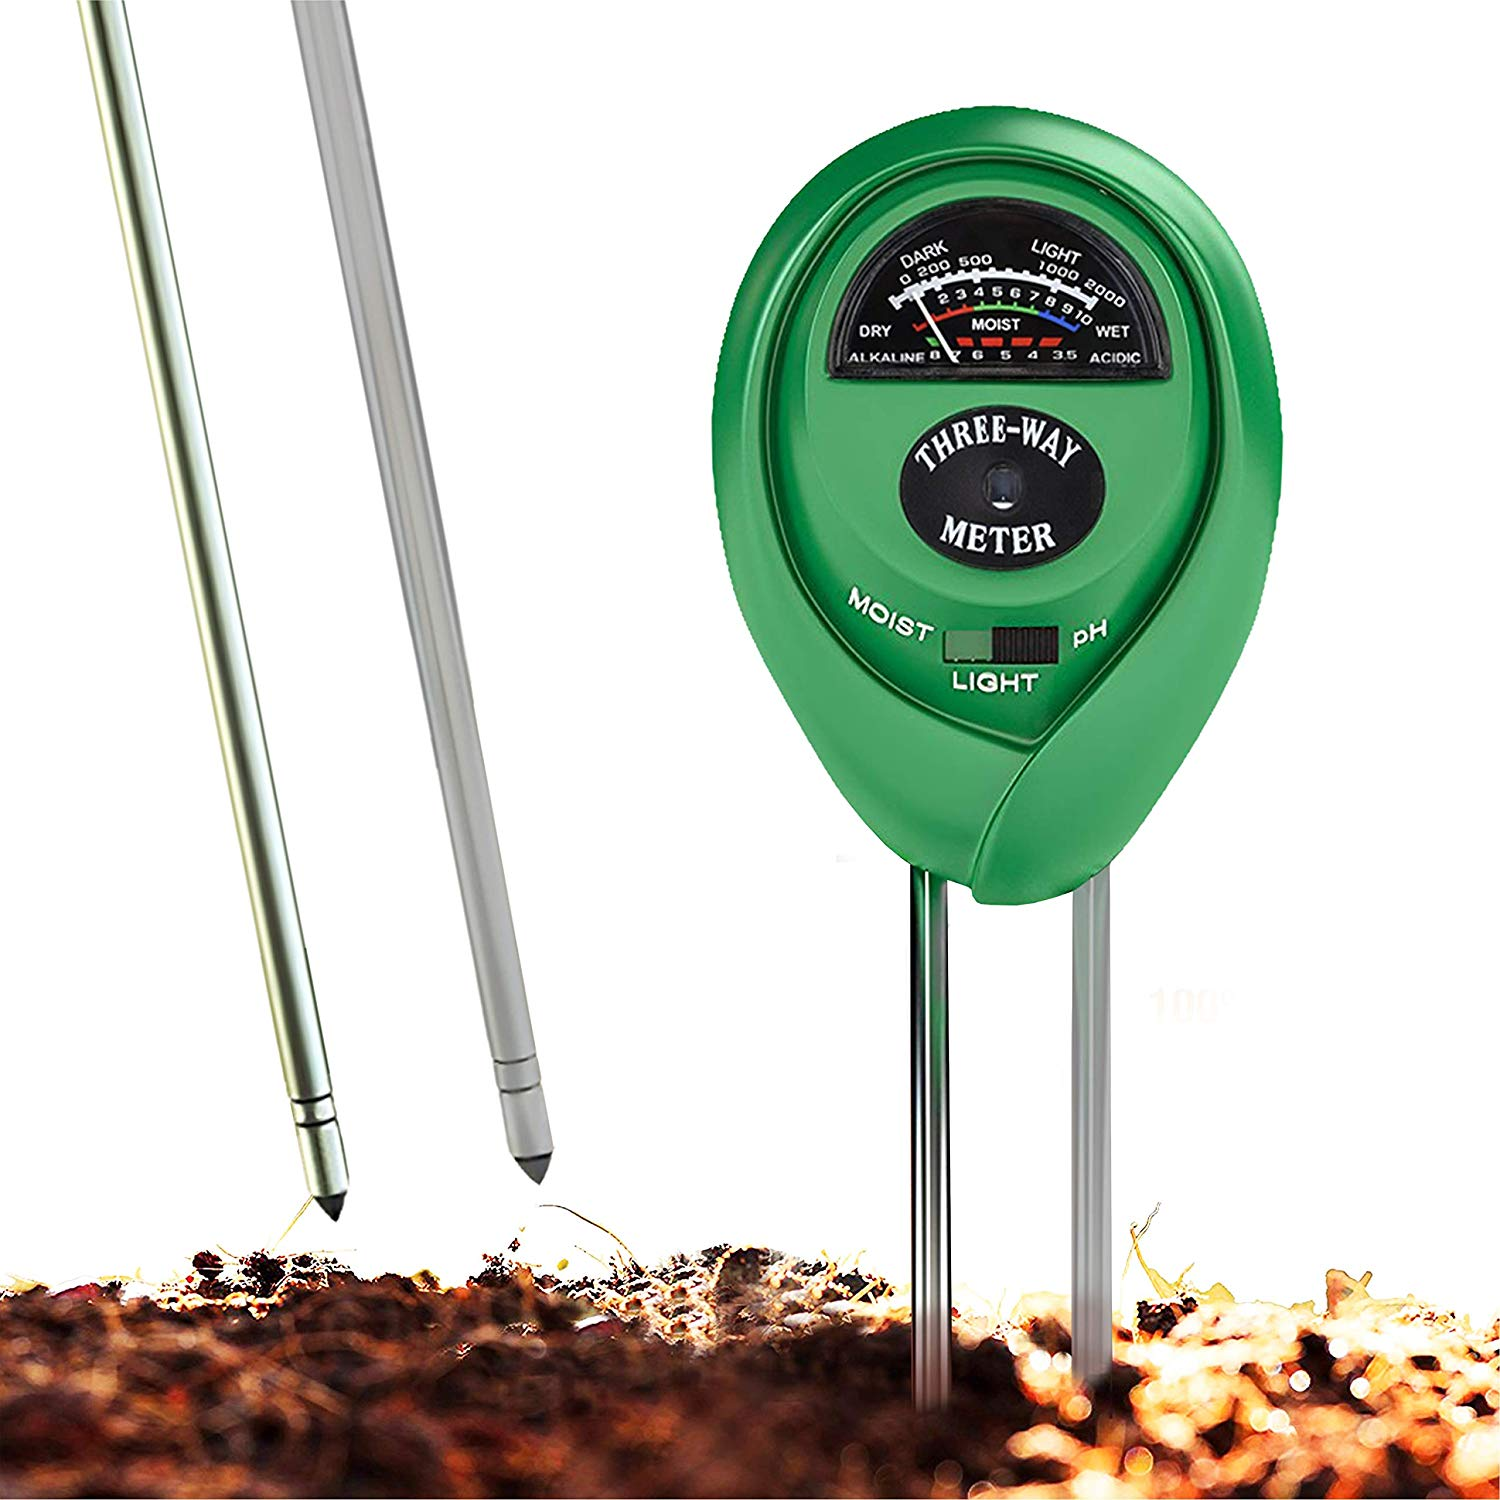 Soil pH Meter, 3-in-1 Soil Test Kit For Moisture, Light and pH, Indoor and Outdoors Soil Tester with 100% Accuracy